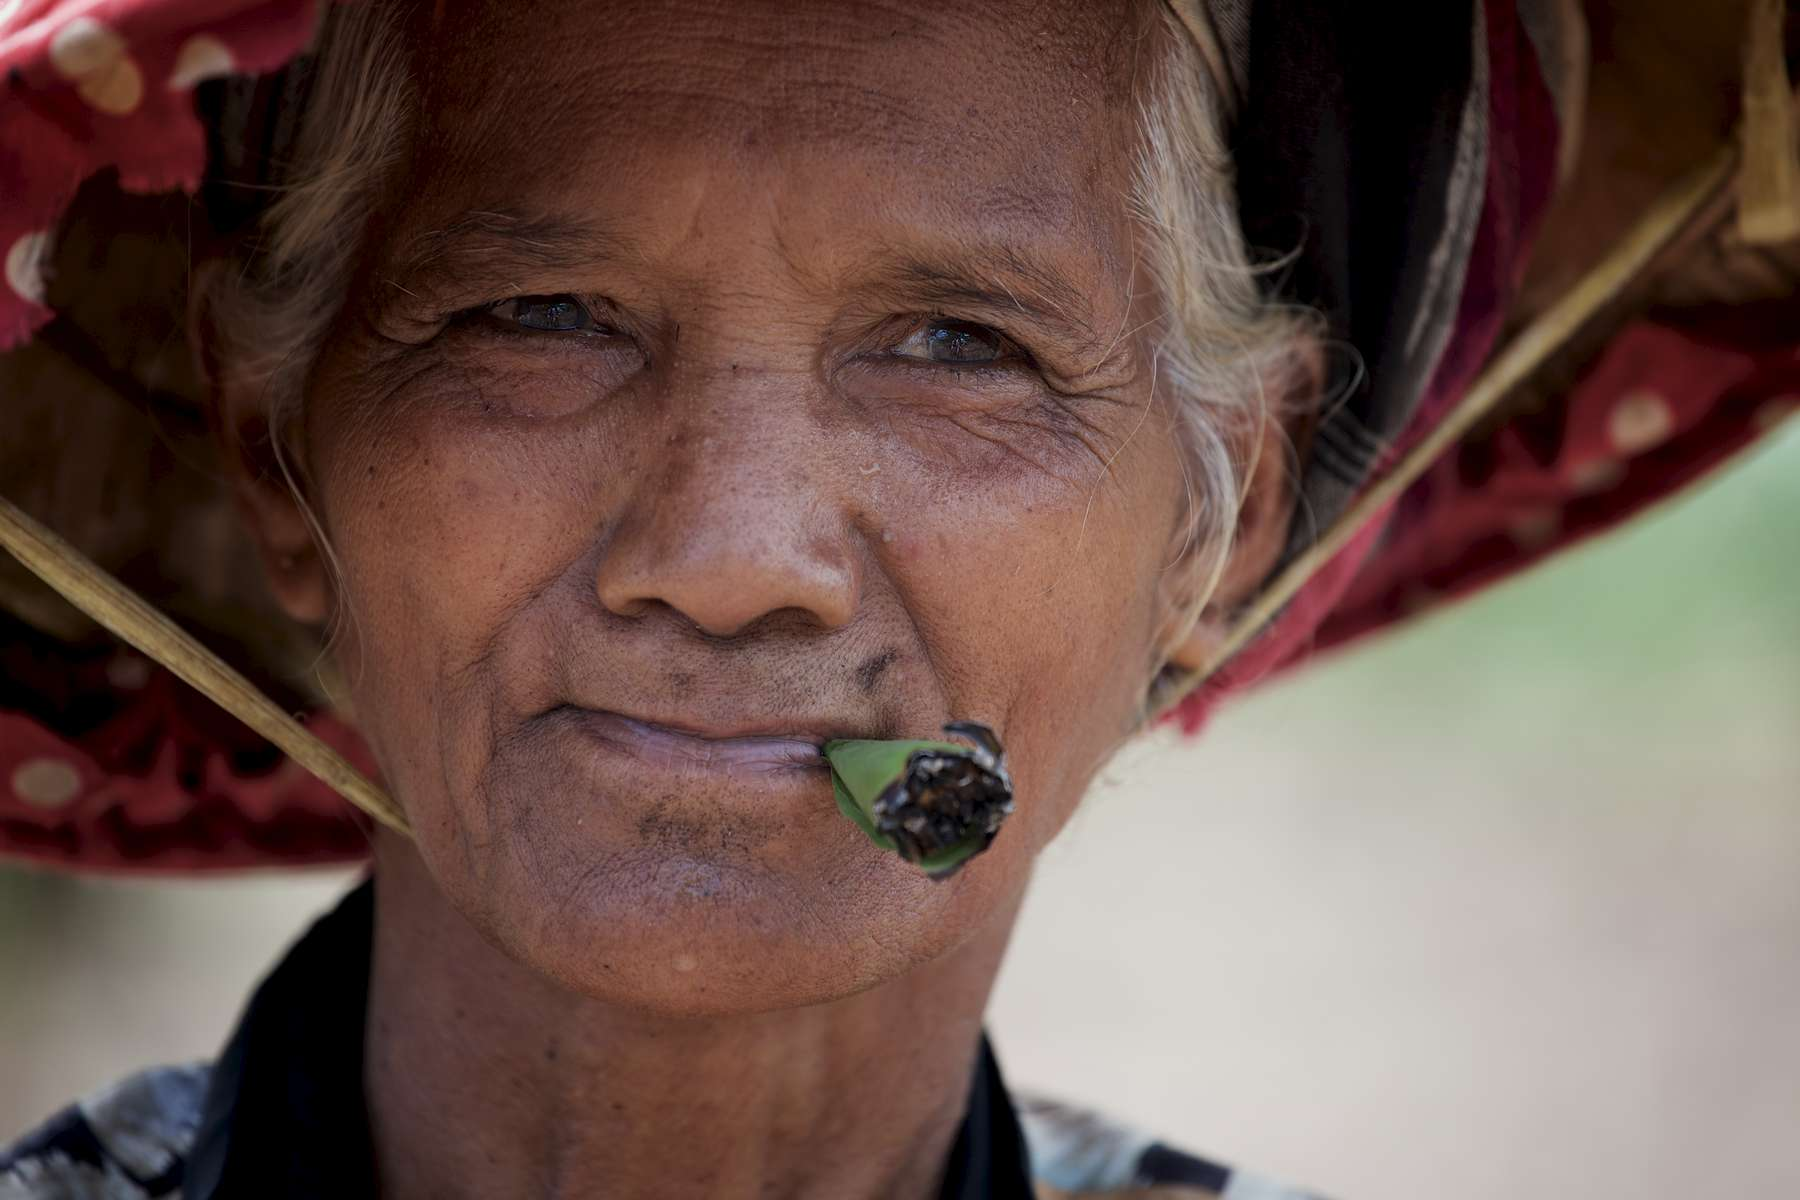 laos-south-bolaven-plateau-lao-tung-smoking-farmer-portrait-photo-by-cyril-eberle-CEB_5108